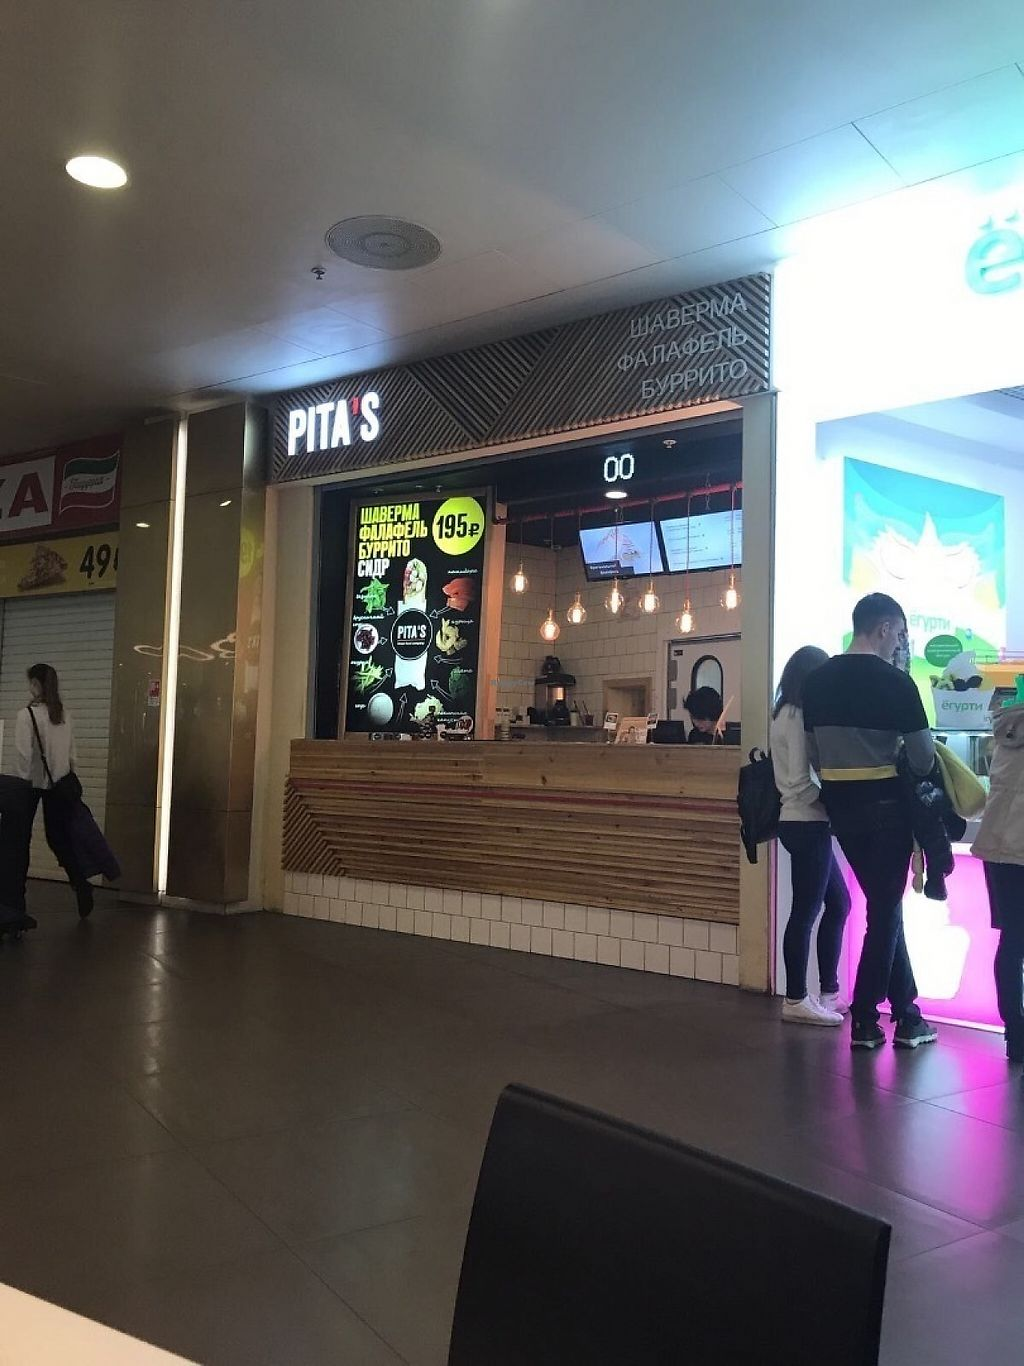 """Photo of Pita's  by <a href=""""/members/profile/JoriMatthijssen"""">JoriMatthijssen</a> <br/>Pita's <br/> May 29, 2017  - <a href='/contact/abuse/image/92988/263697'>Report</a>"""